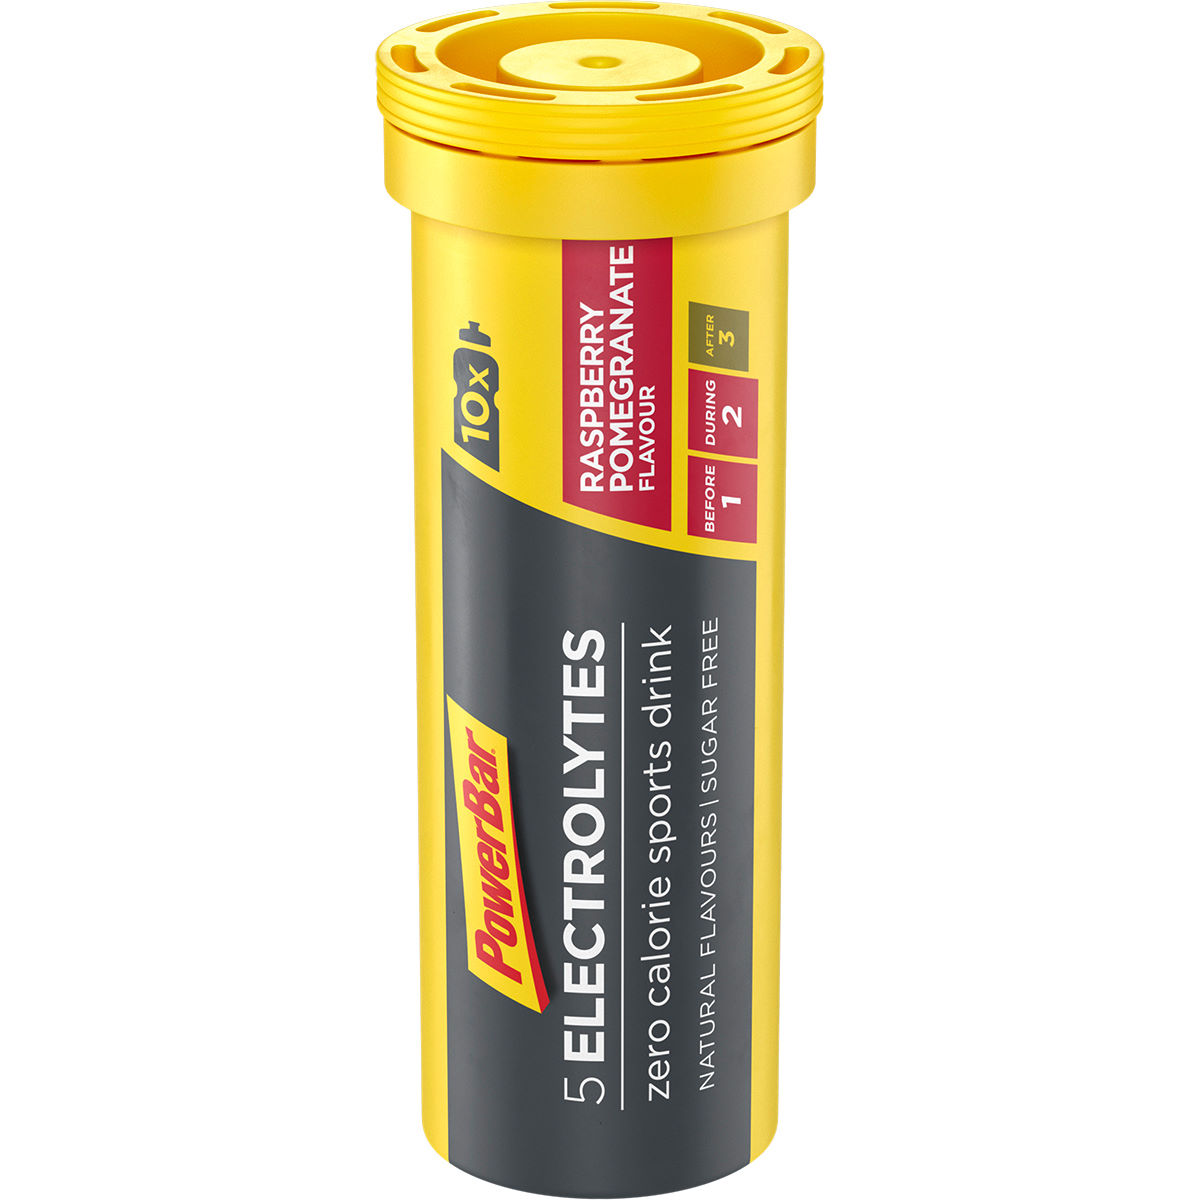 Image of Pastilles PowerBar 5 Electrolytes (10 par tube) - tube of 10